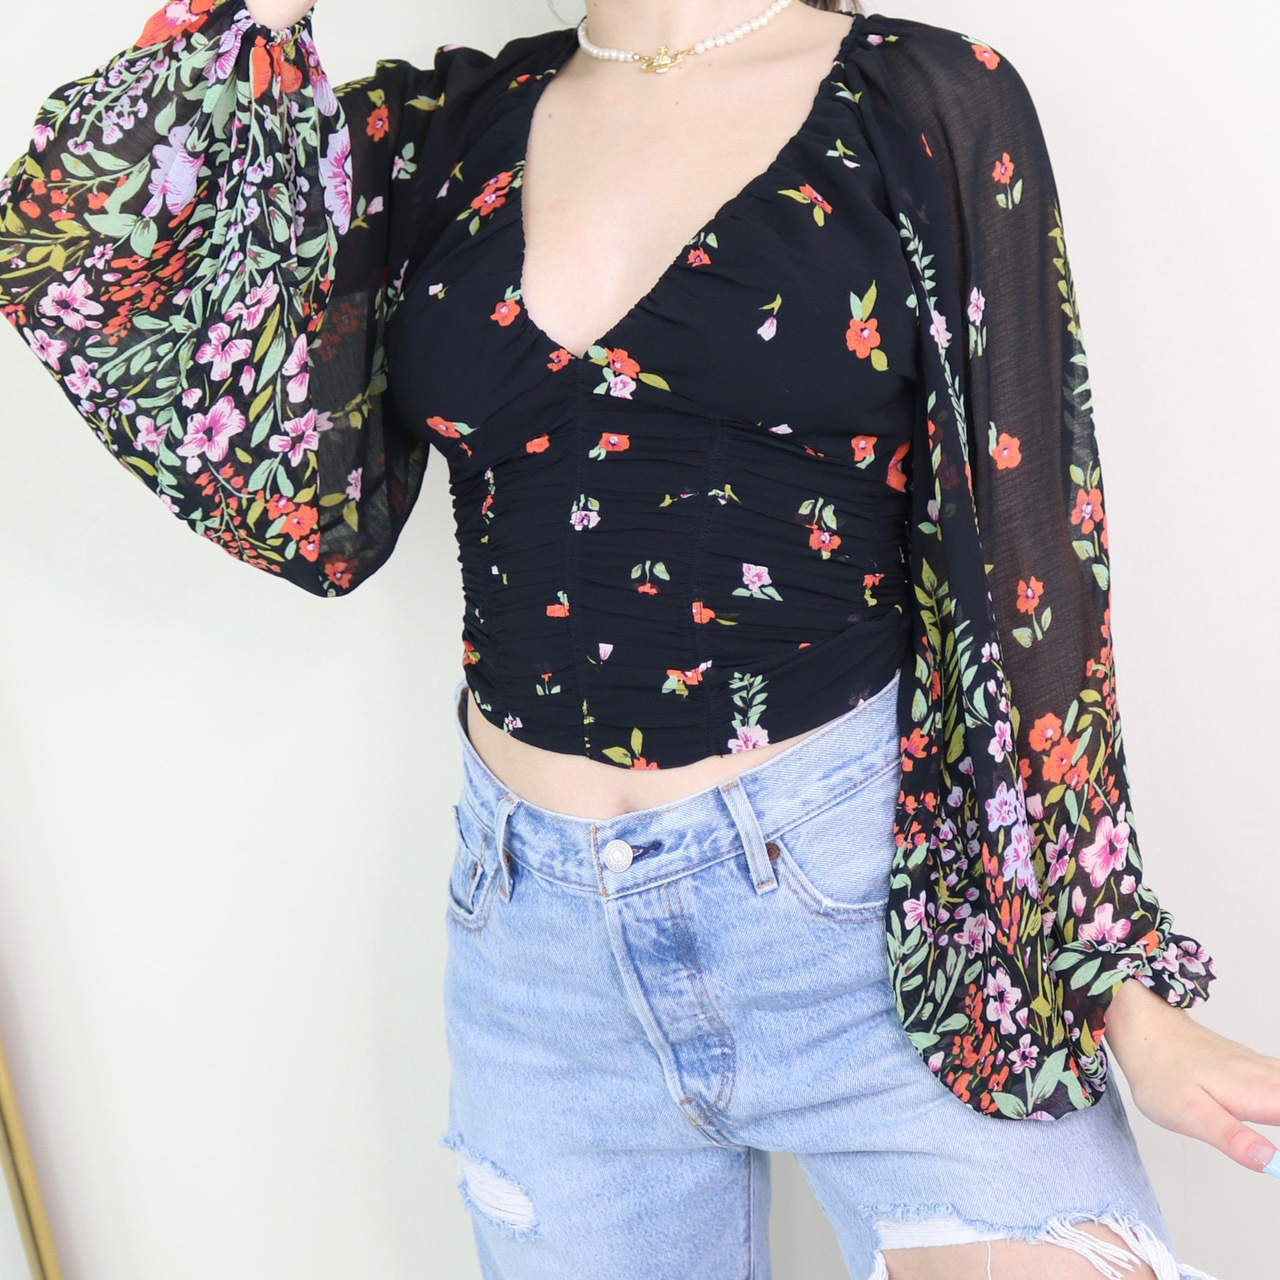 Free People - Black Multi Colored Ruched Floral Top